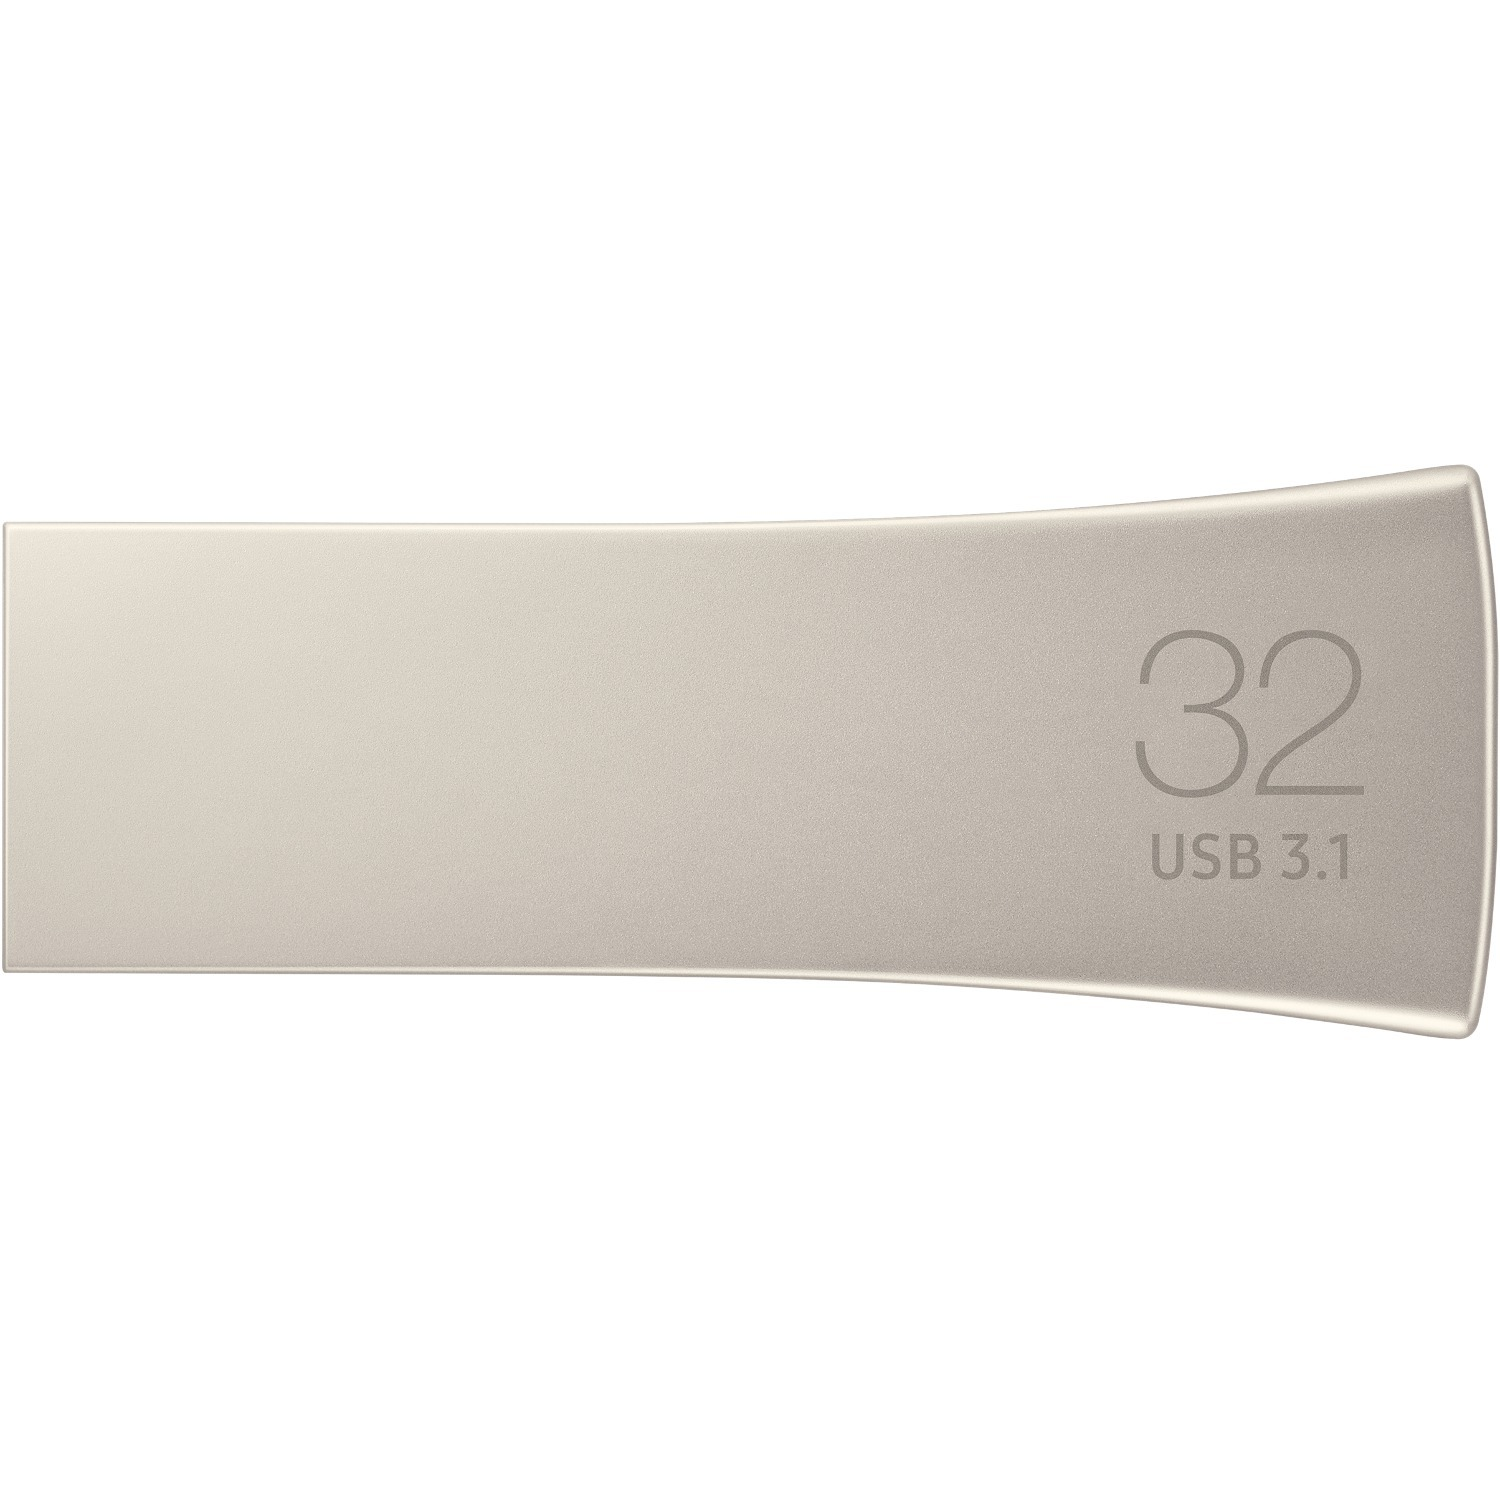 Samsung BAR Plus 32 GB USB 3.1 Type A Flash Drive - Champagne Silver - 1